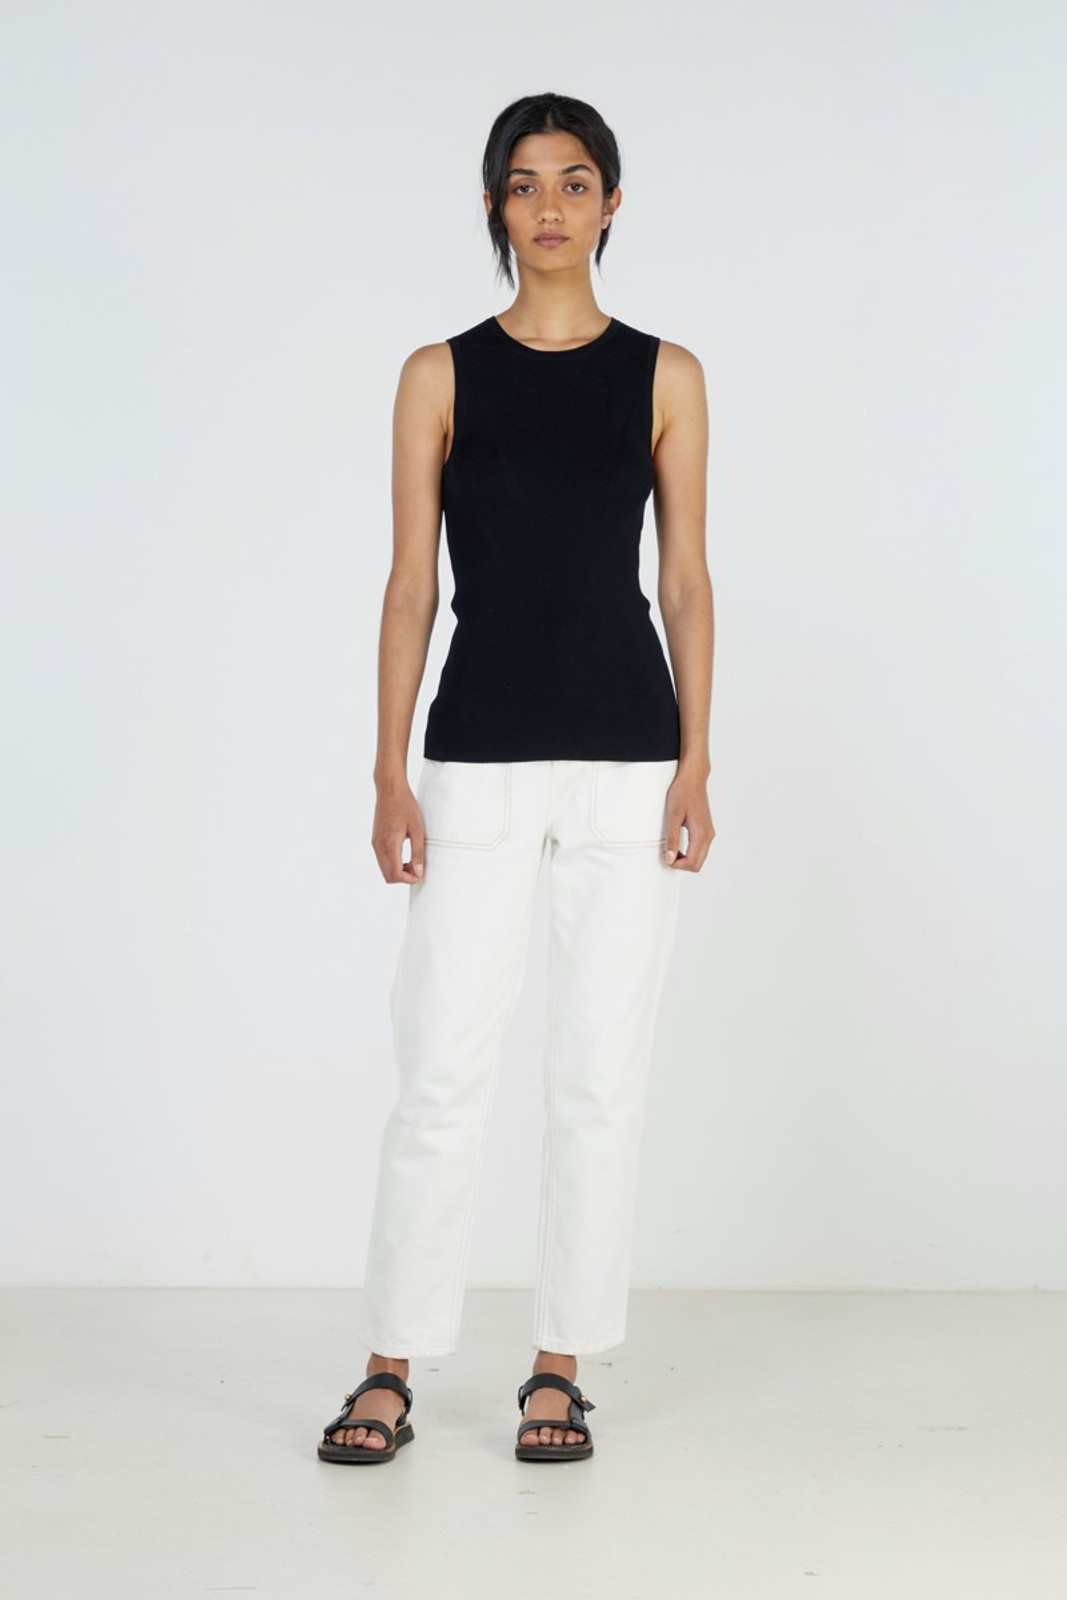 Elka Collective WOMENS Black Tone Knit Top 1